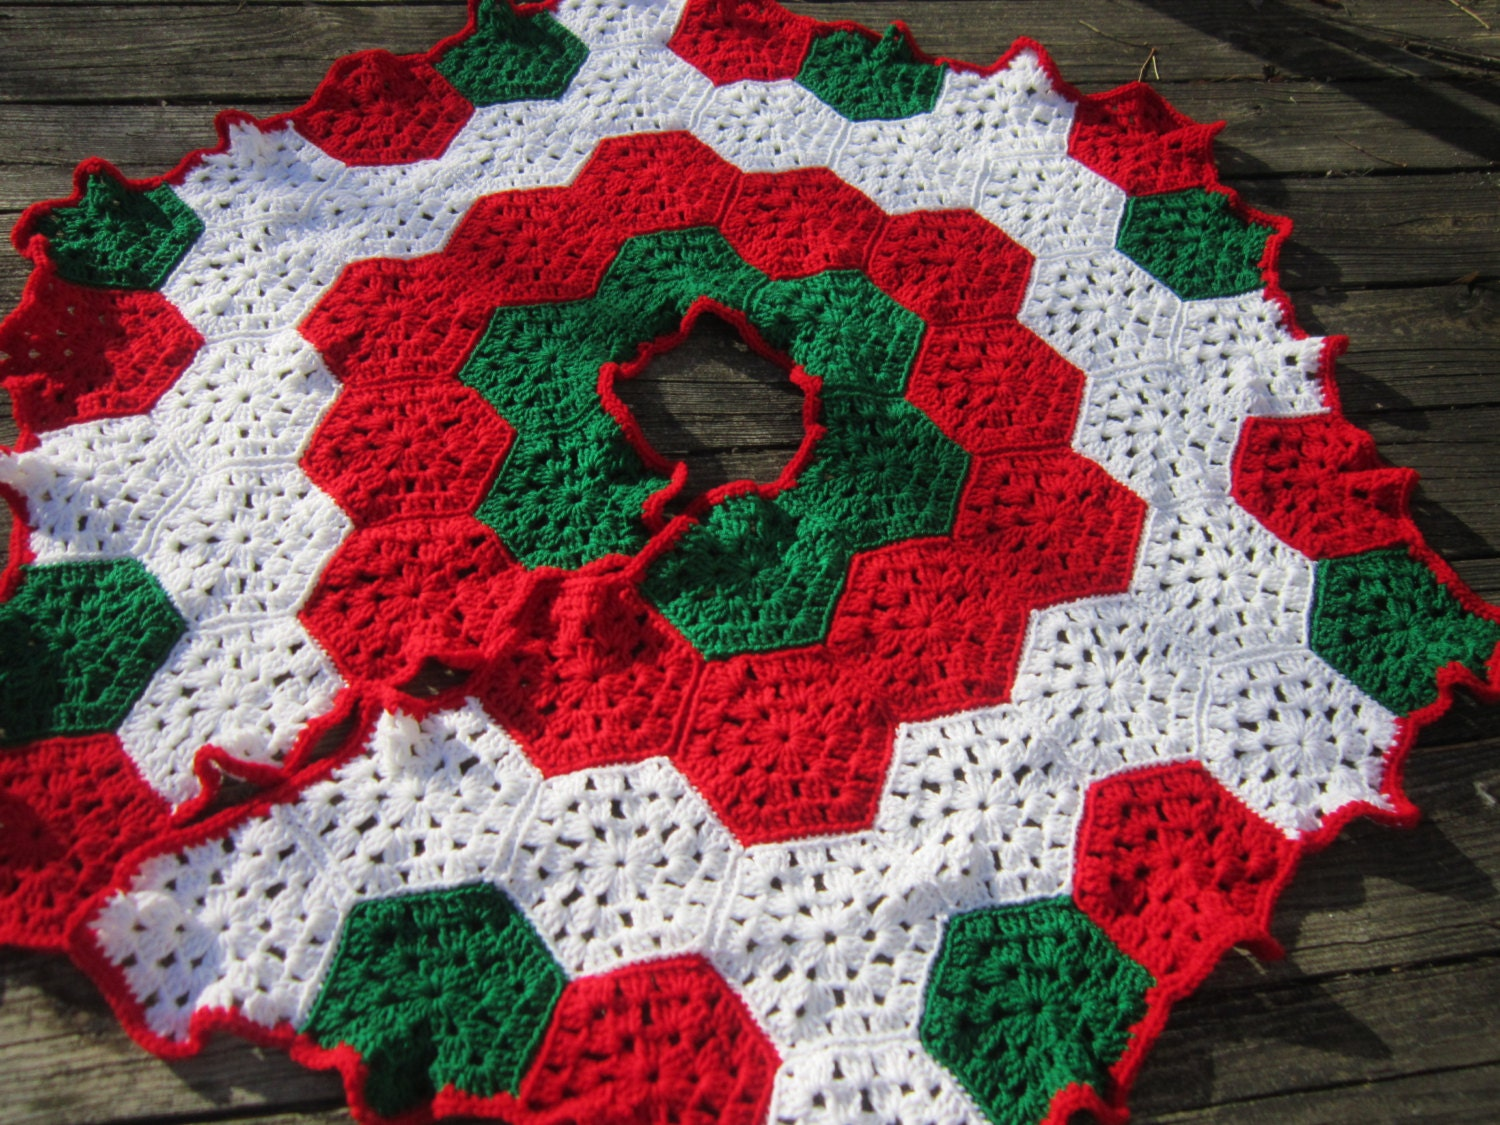 Christmas Tree Skirt Crocheted Granny by crochetedbycharlene